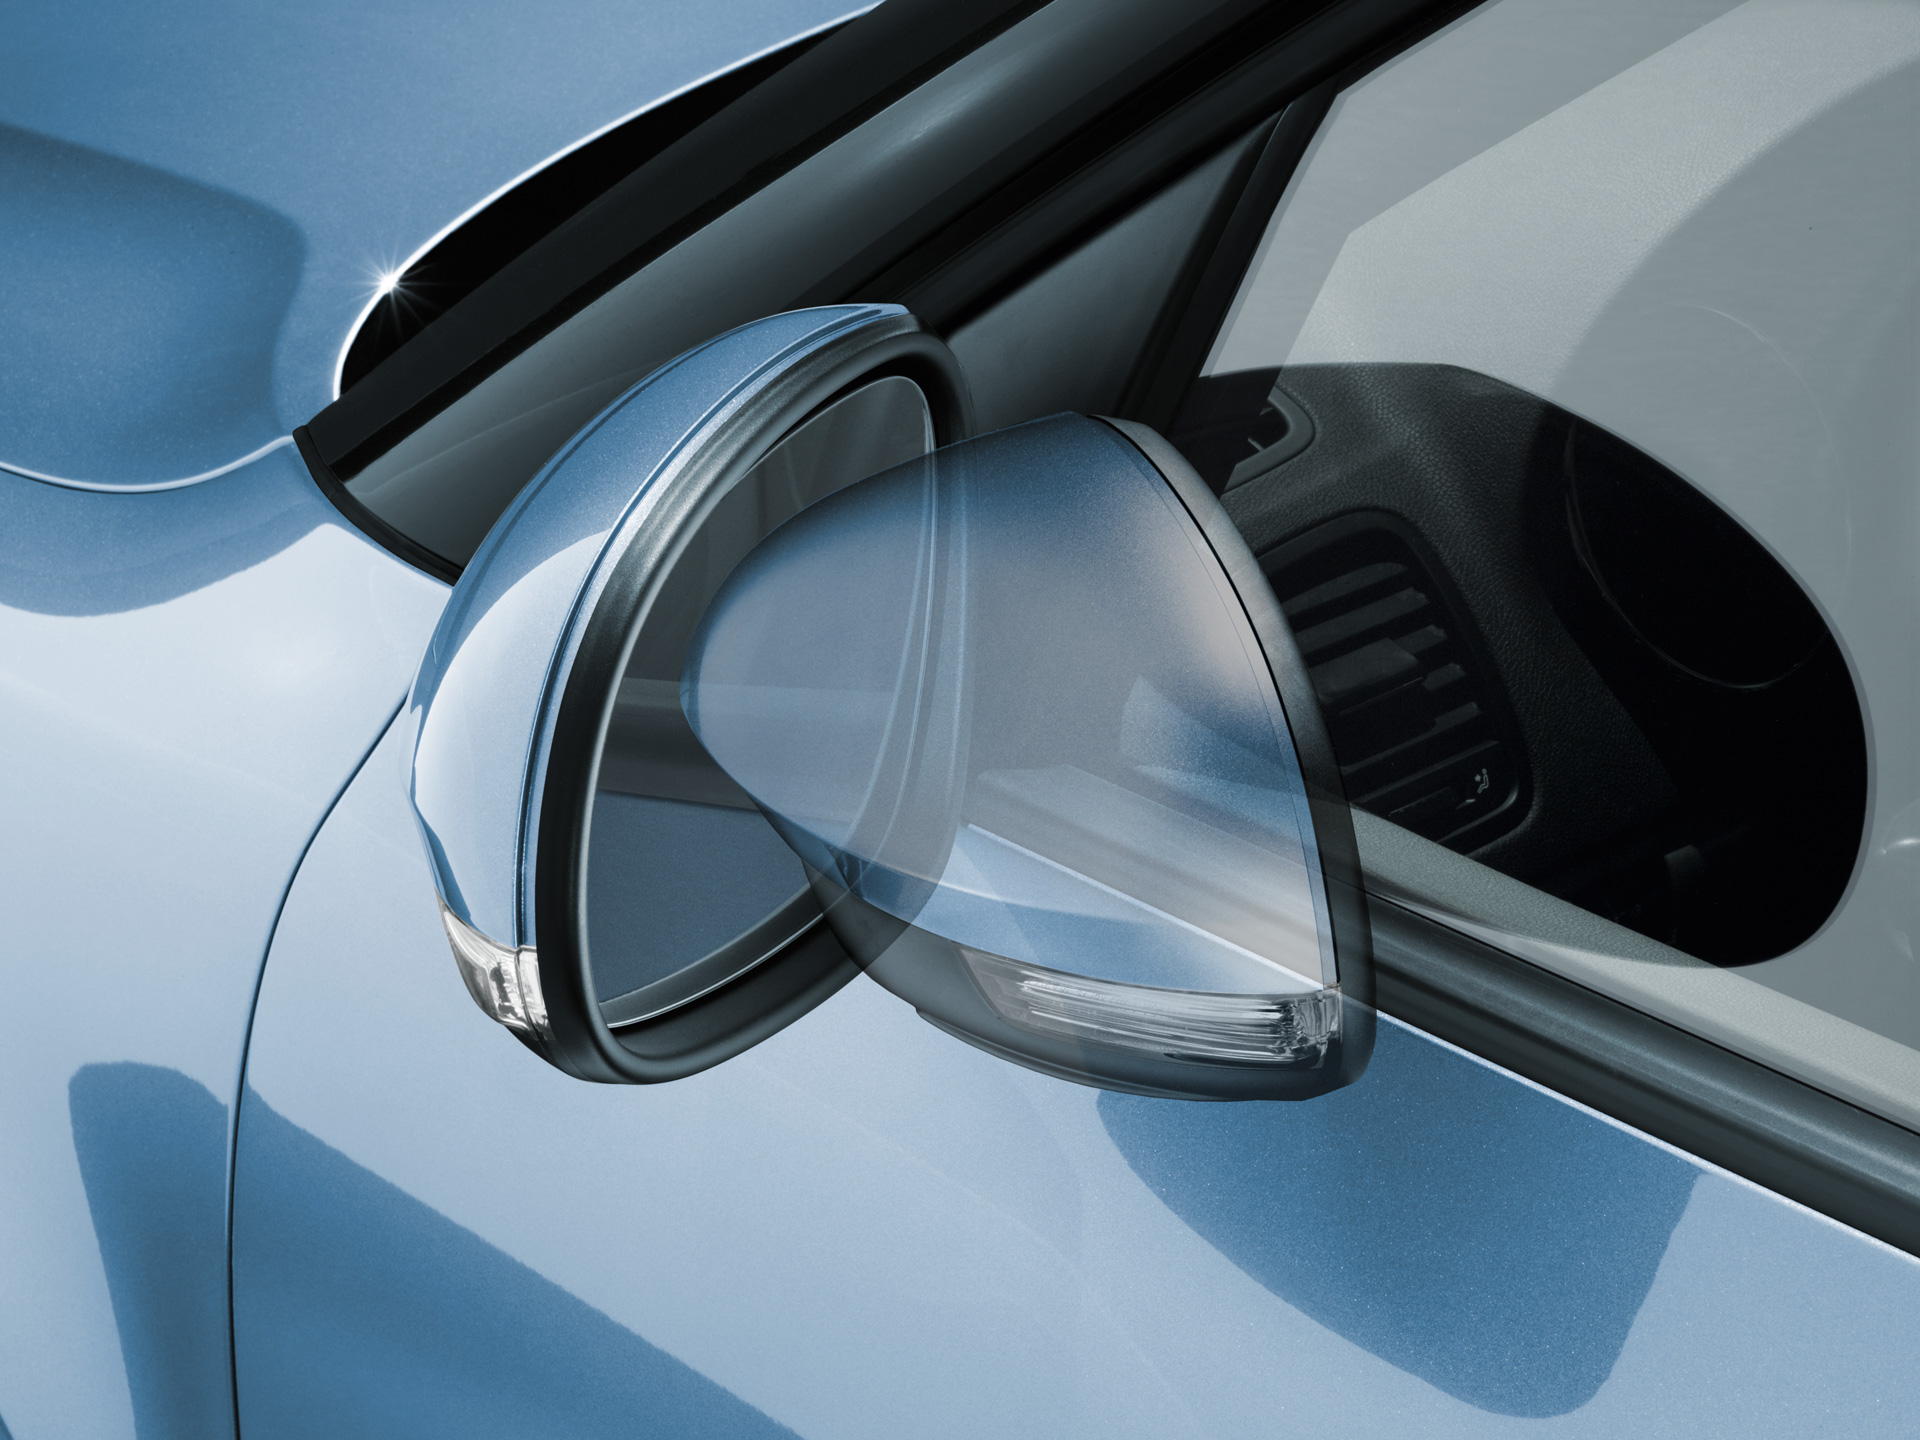 ŠKODA Yeti Automatically retractable external rearview mirrors with boarding spots designed to illuminate the entry area